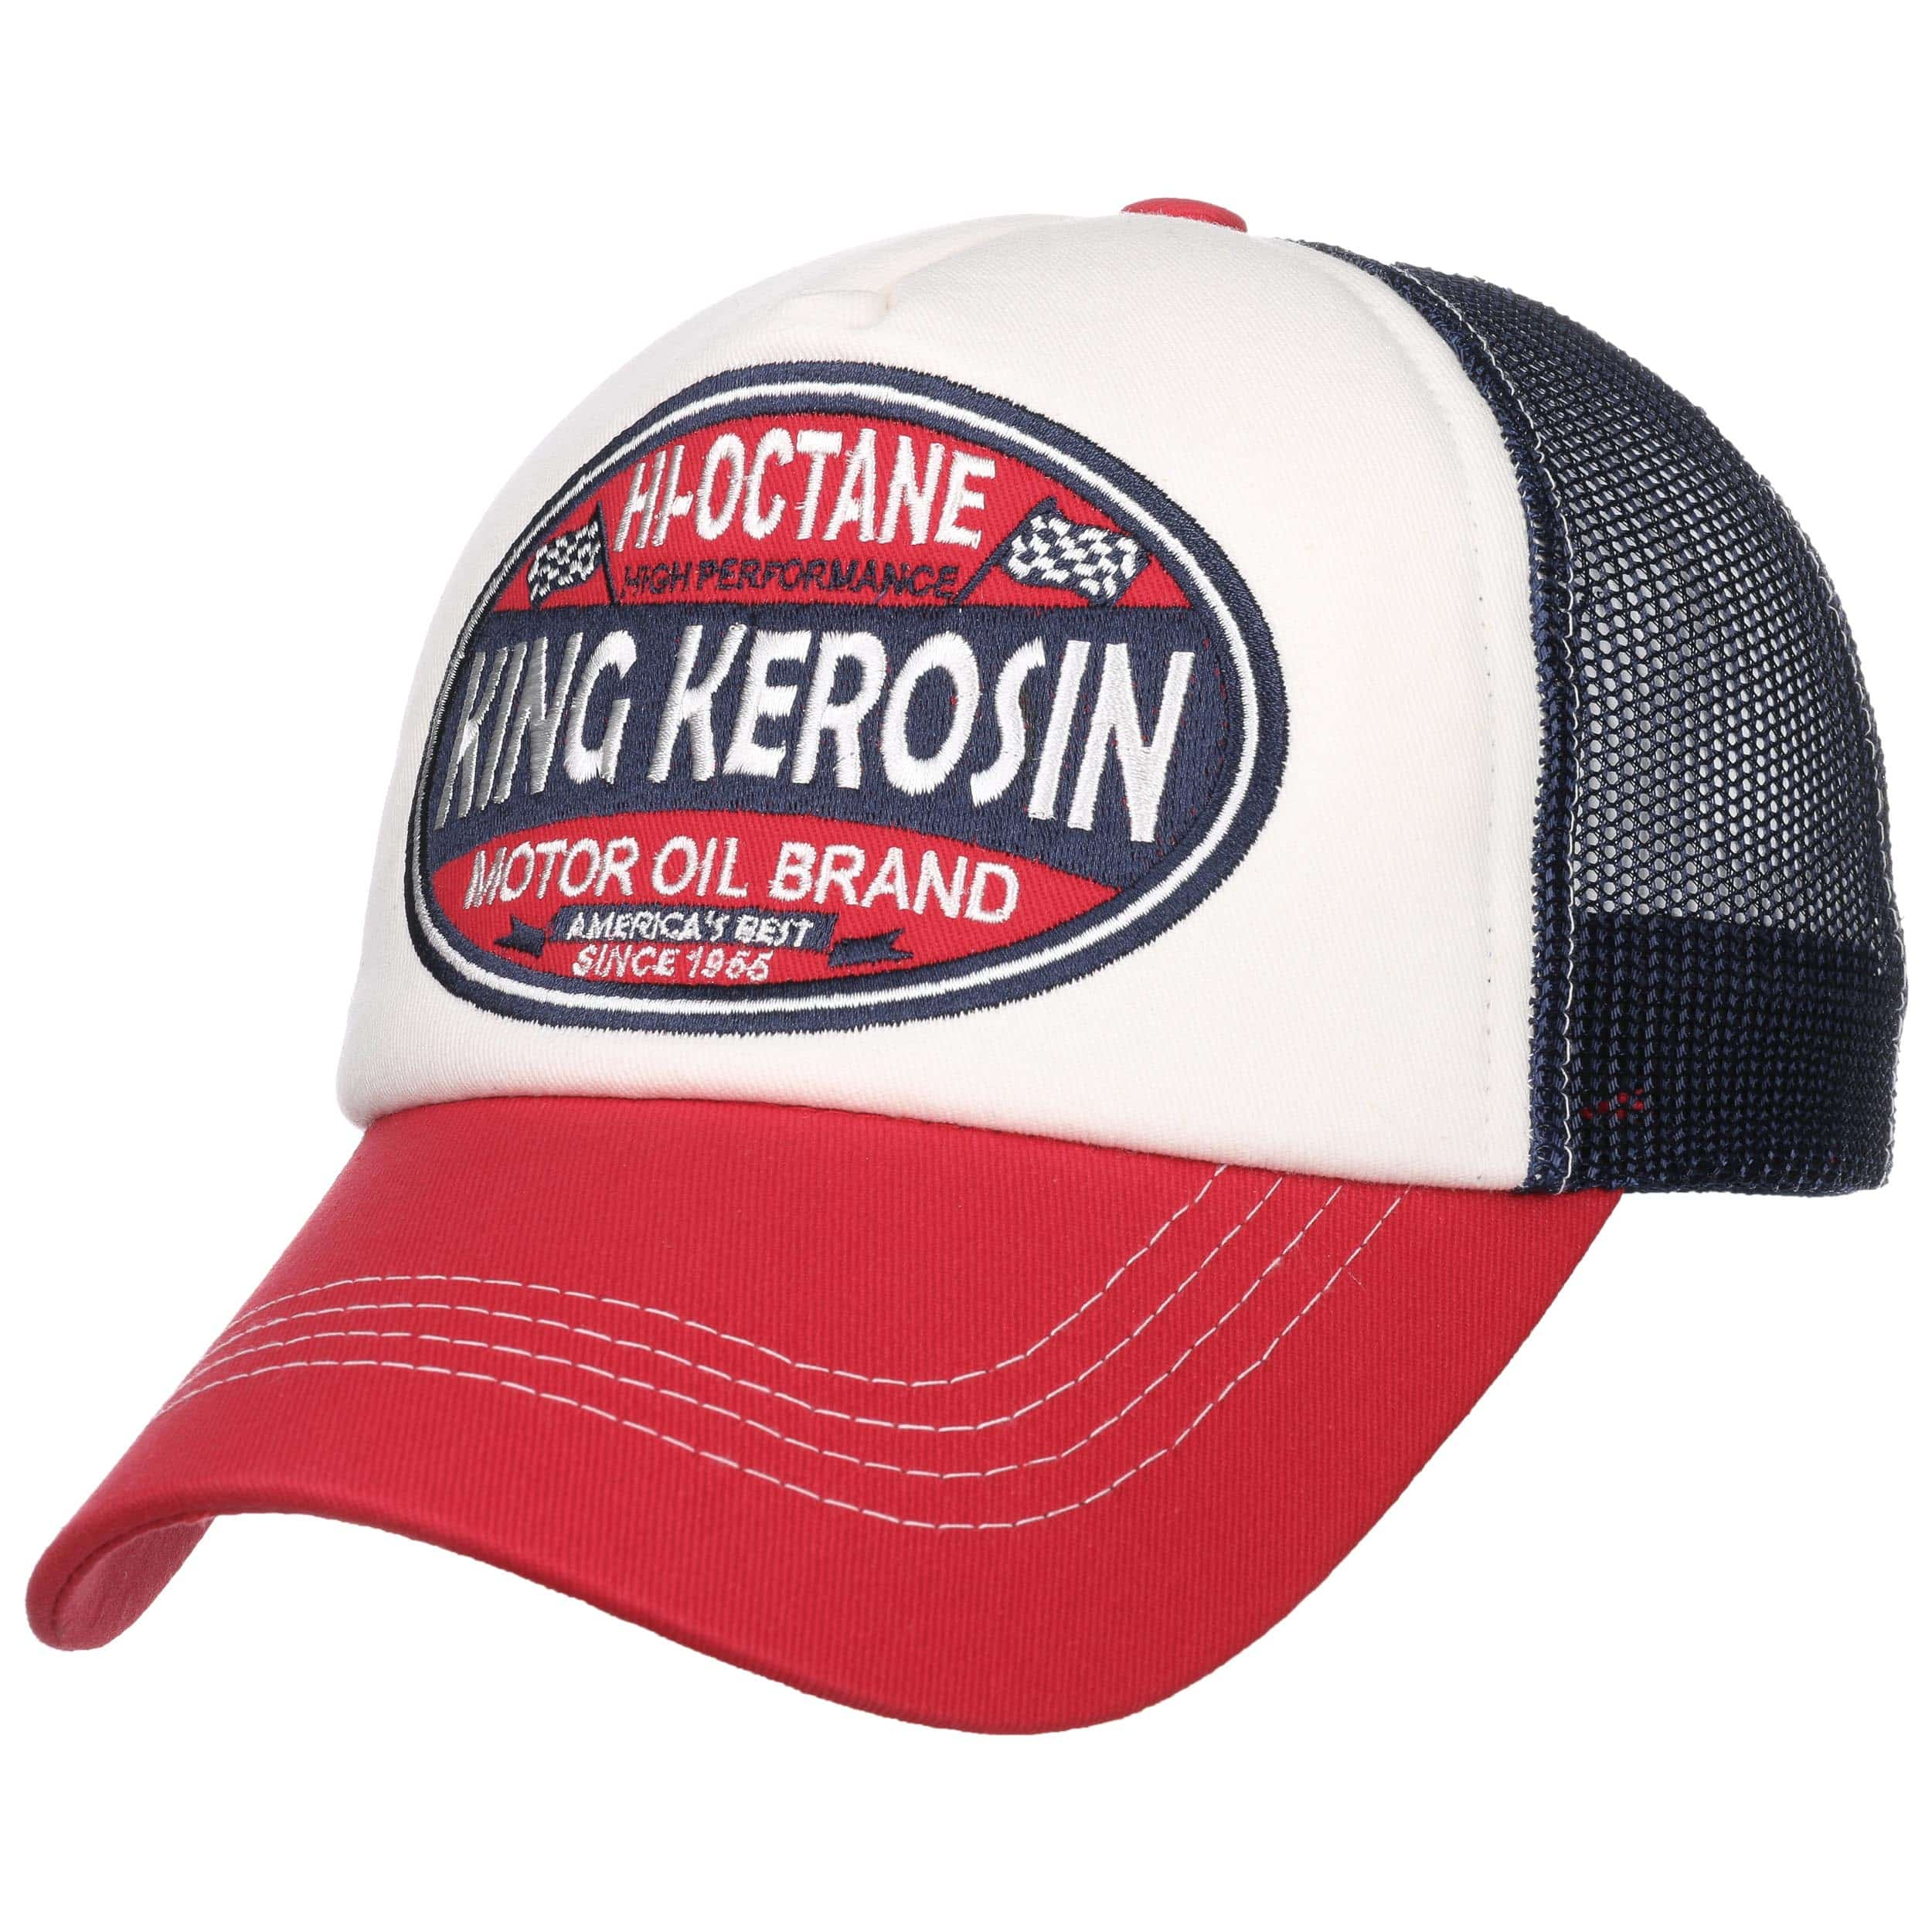 b88e666e6 Hi Octane Trucker Cap by King Kerosin